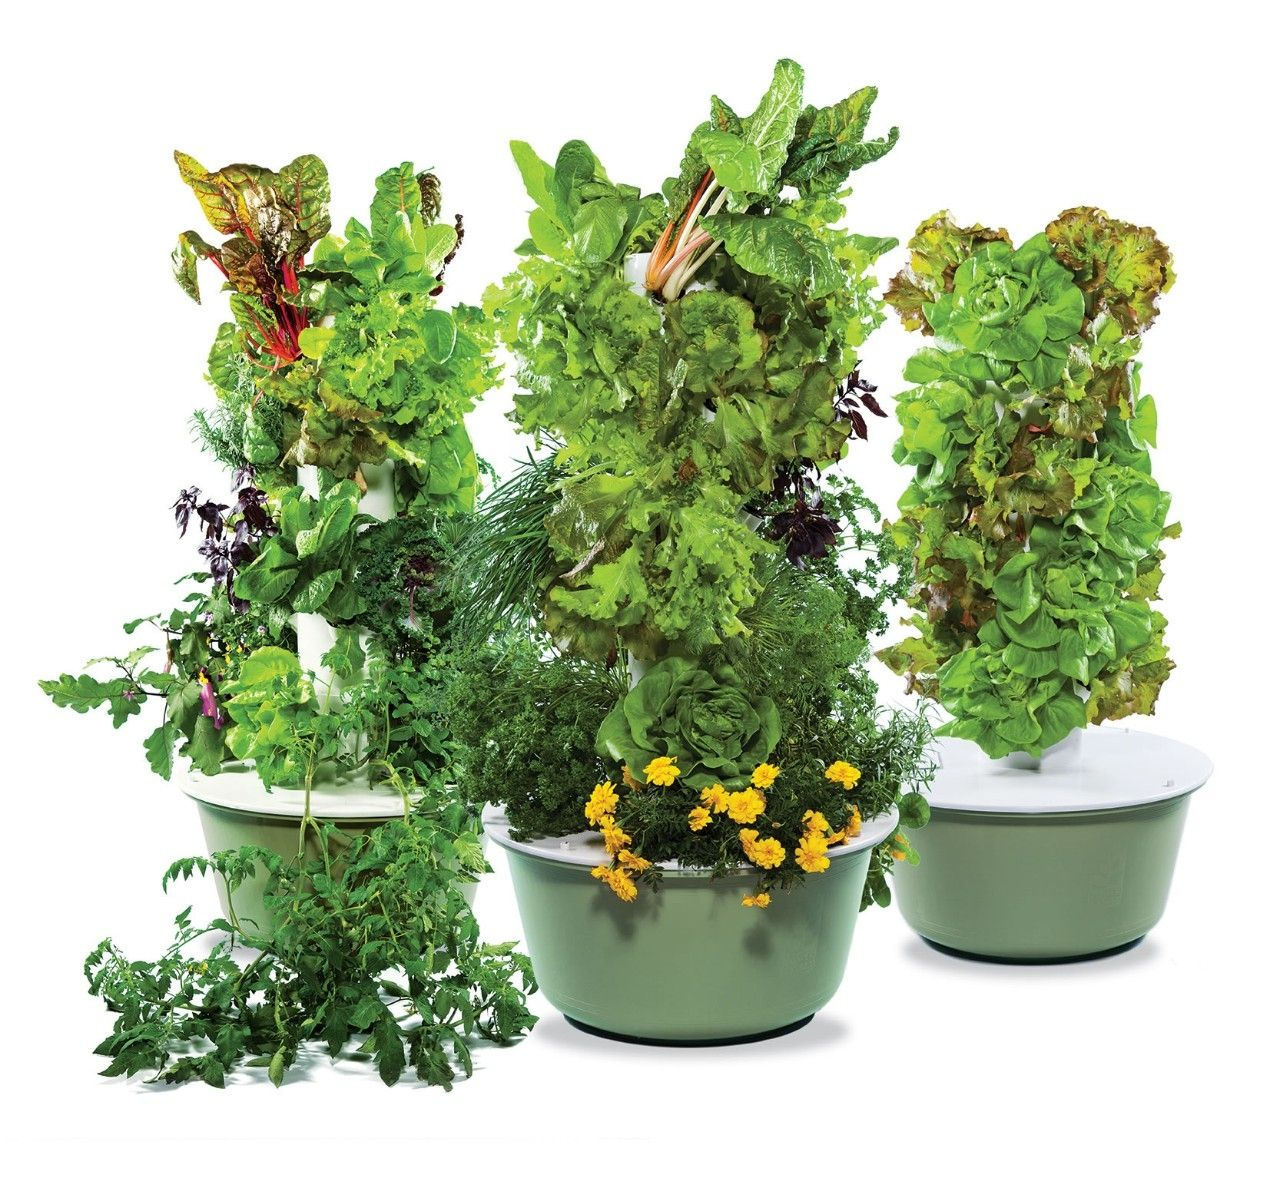 Tower Garden Family Garden Aeroponic System 1690 garden ideas